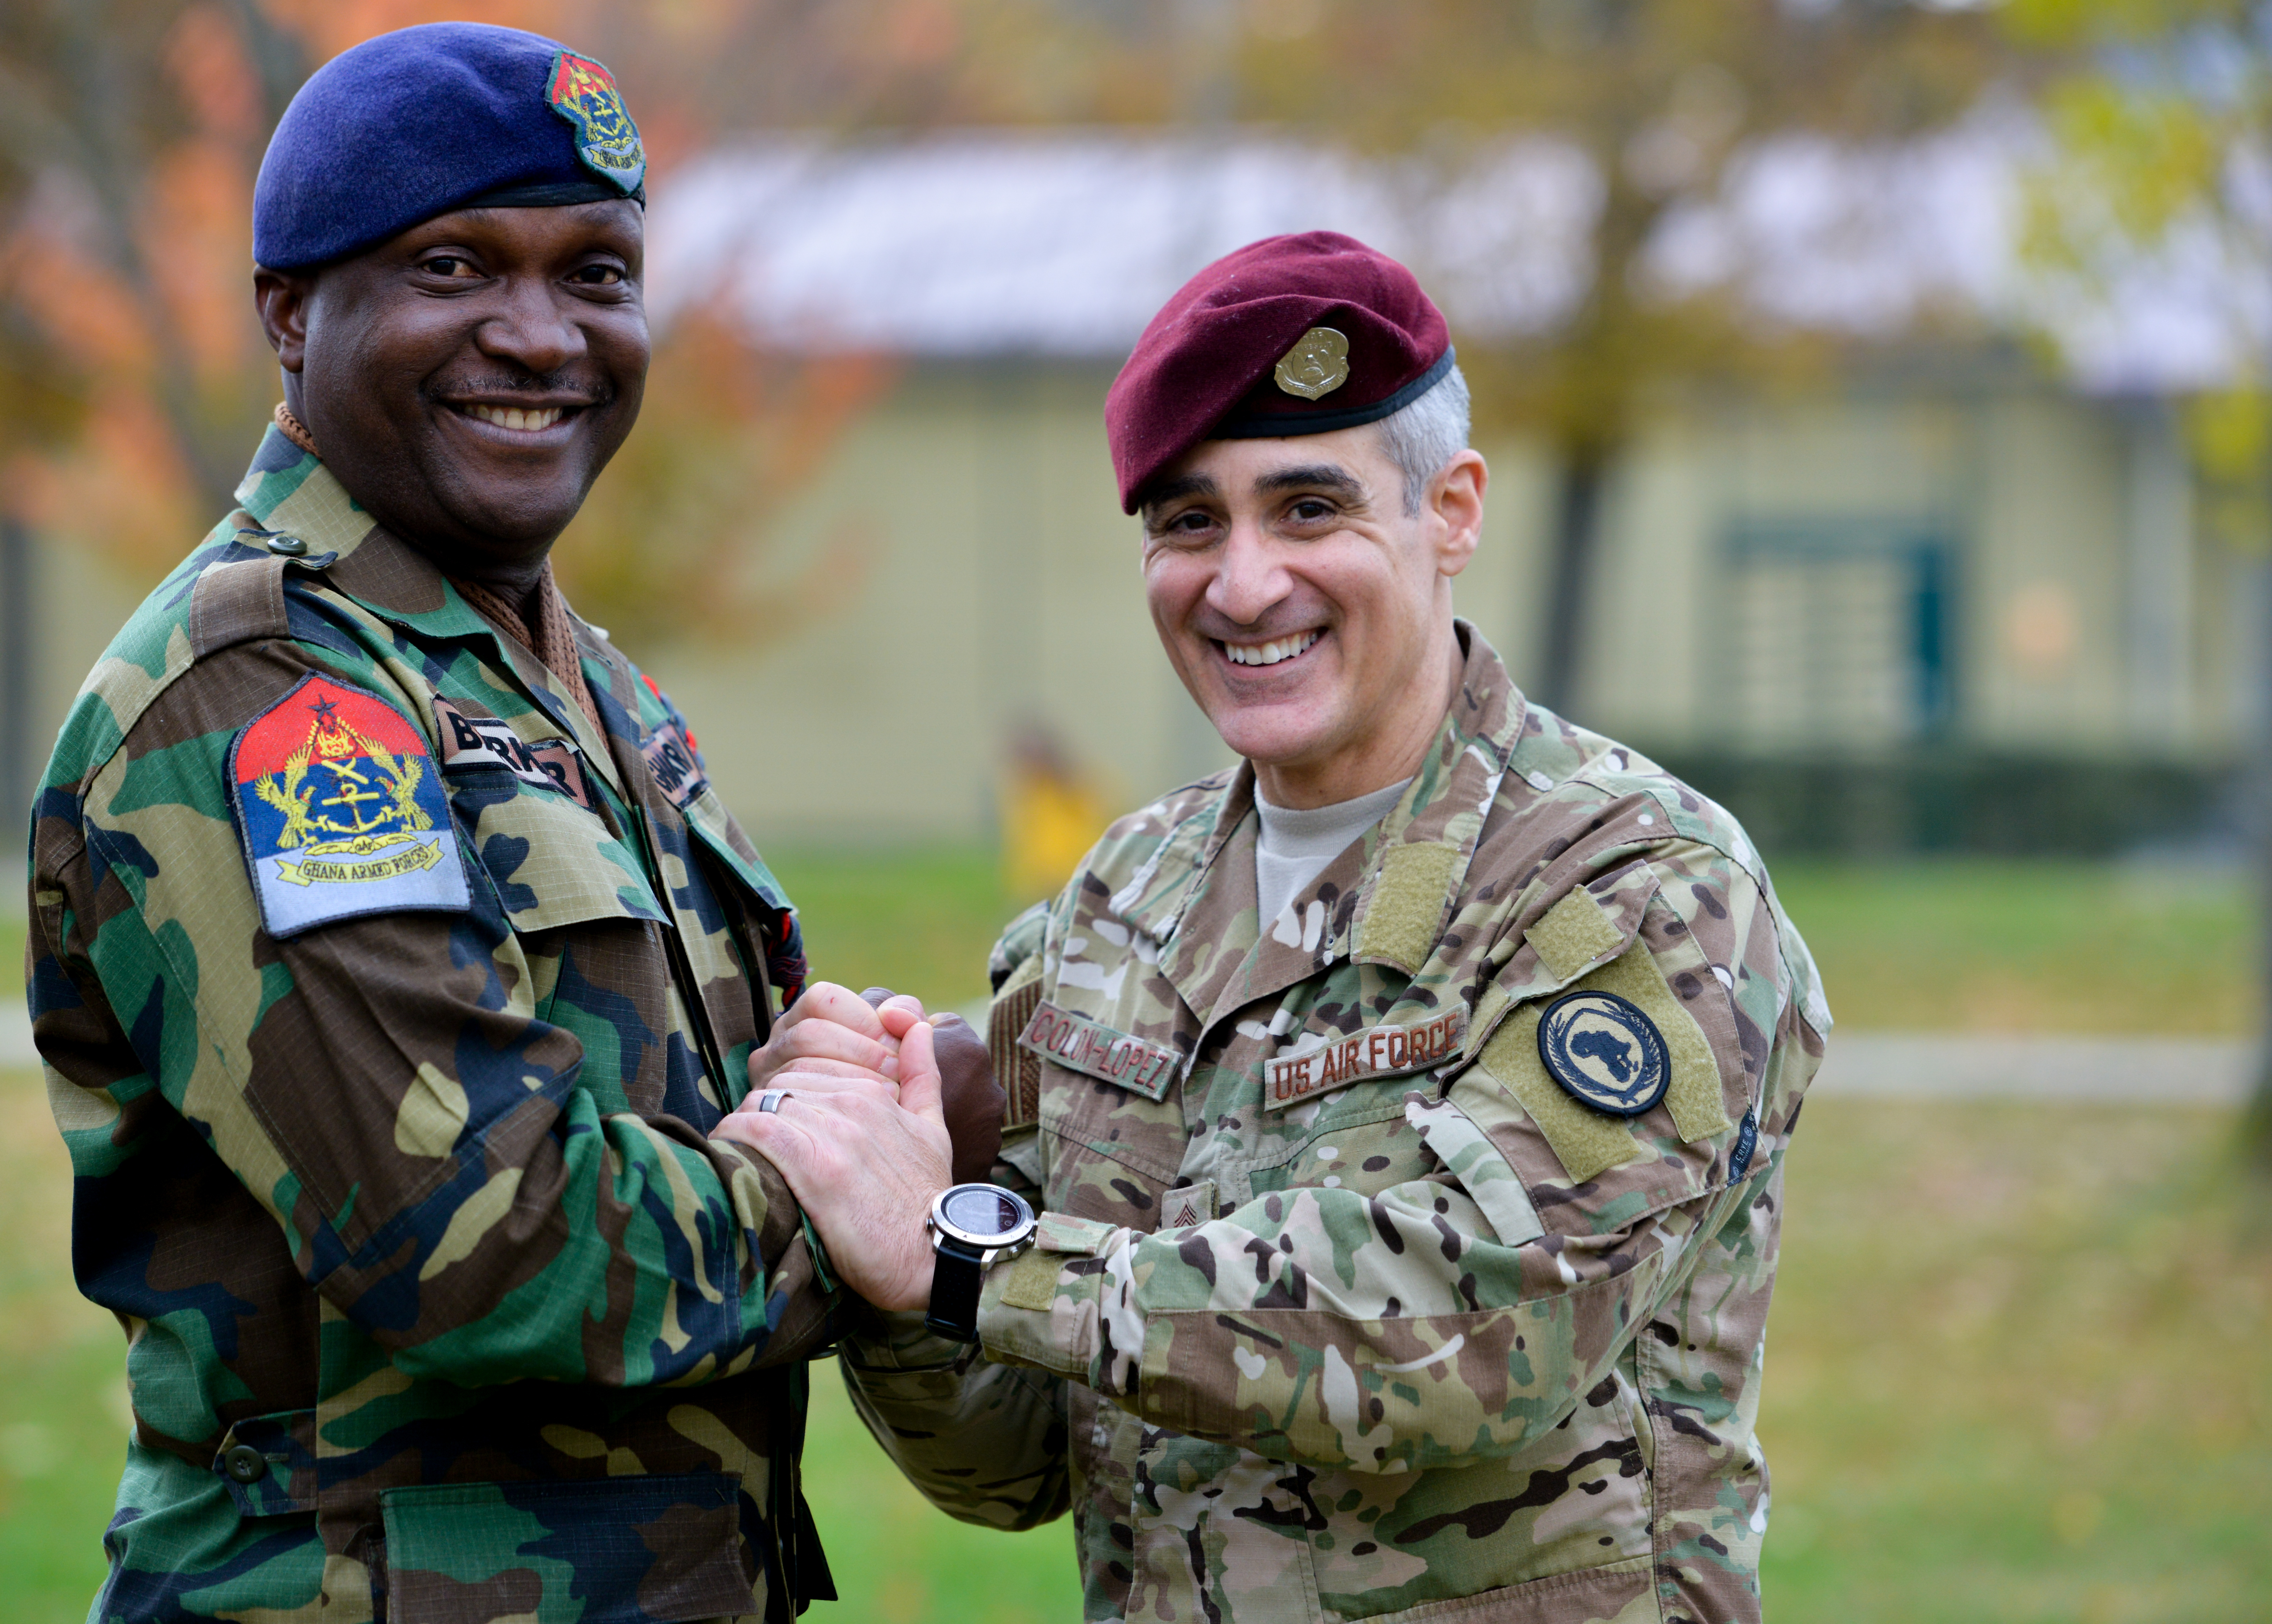 U.S. Air Force Chief Master Sgt. Ramon Colon-Lopez, outgoing command senior enlisted leader, U.S. Africa Command, poses for a photo with Chief Warrant Officer Ramous Barker, forces sergeant major of the Ghana Armed Forces following a relinquishment of responsibility ceremony Nov. 15, 2019 in Stuttgart, Germany.